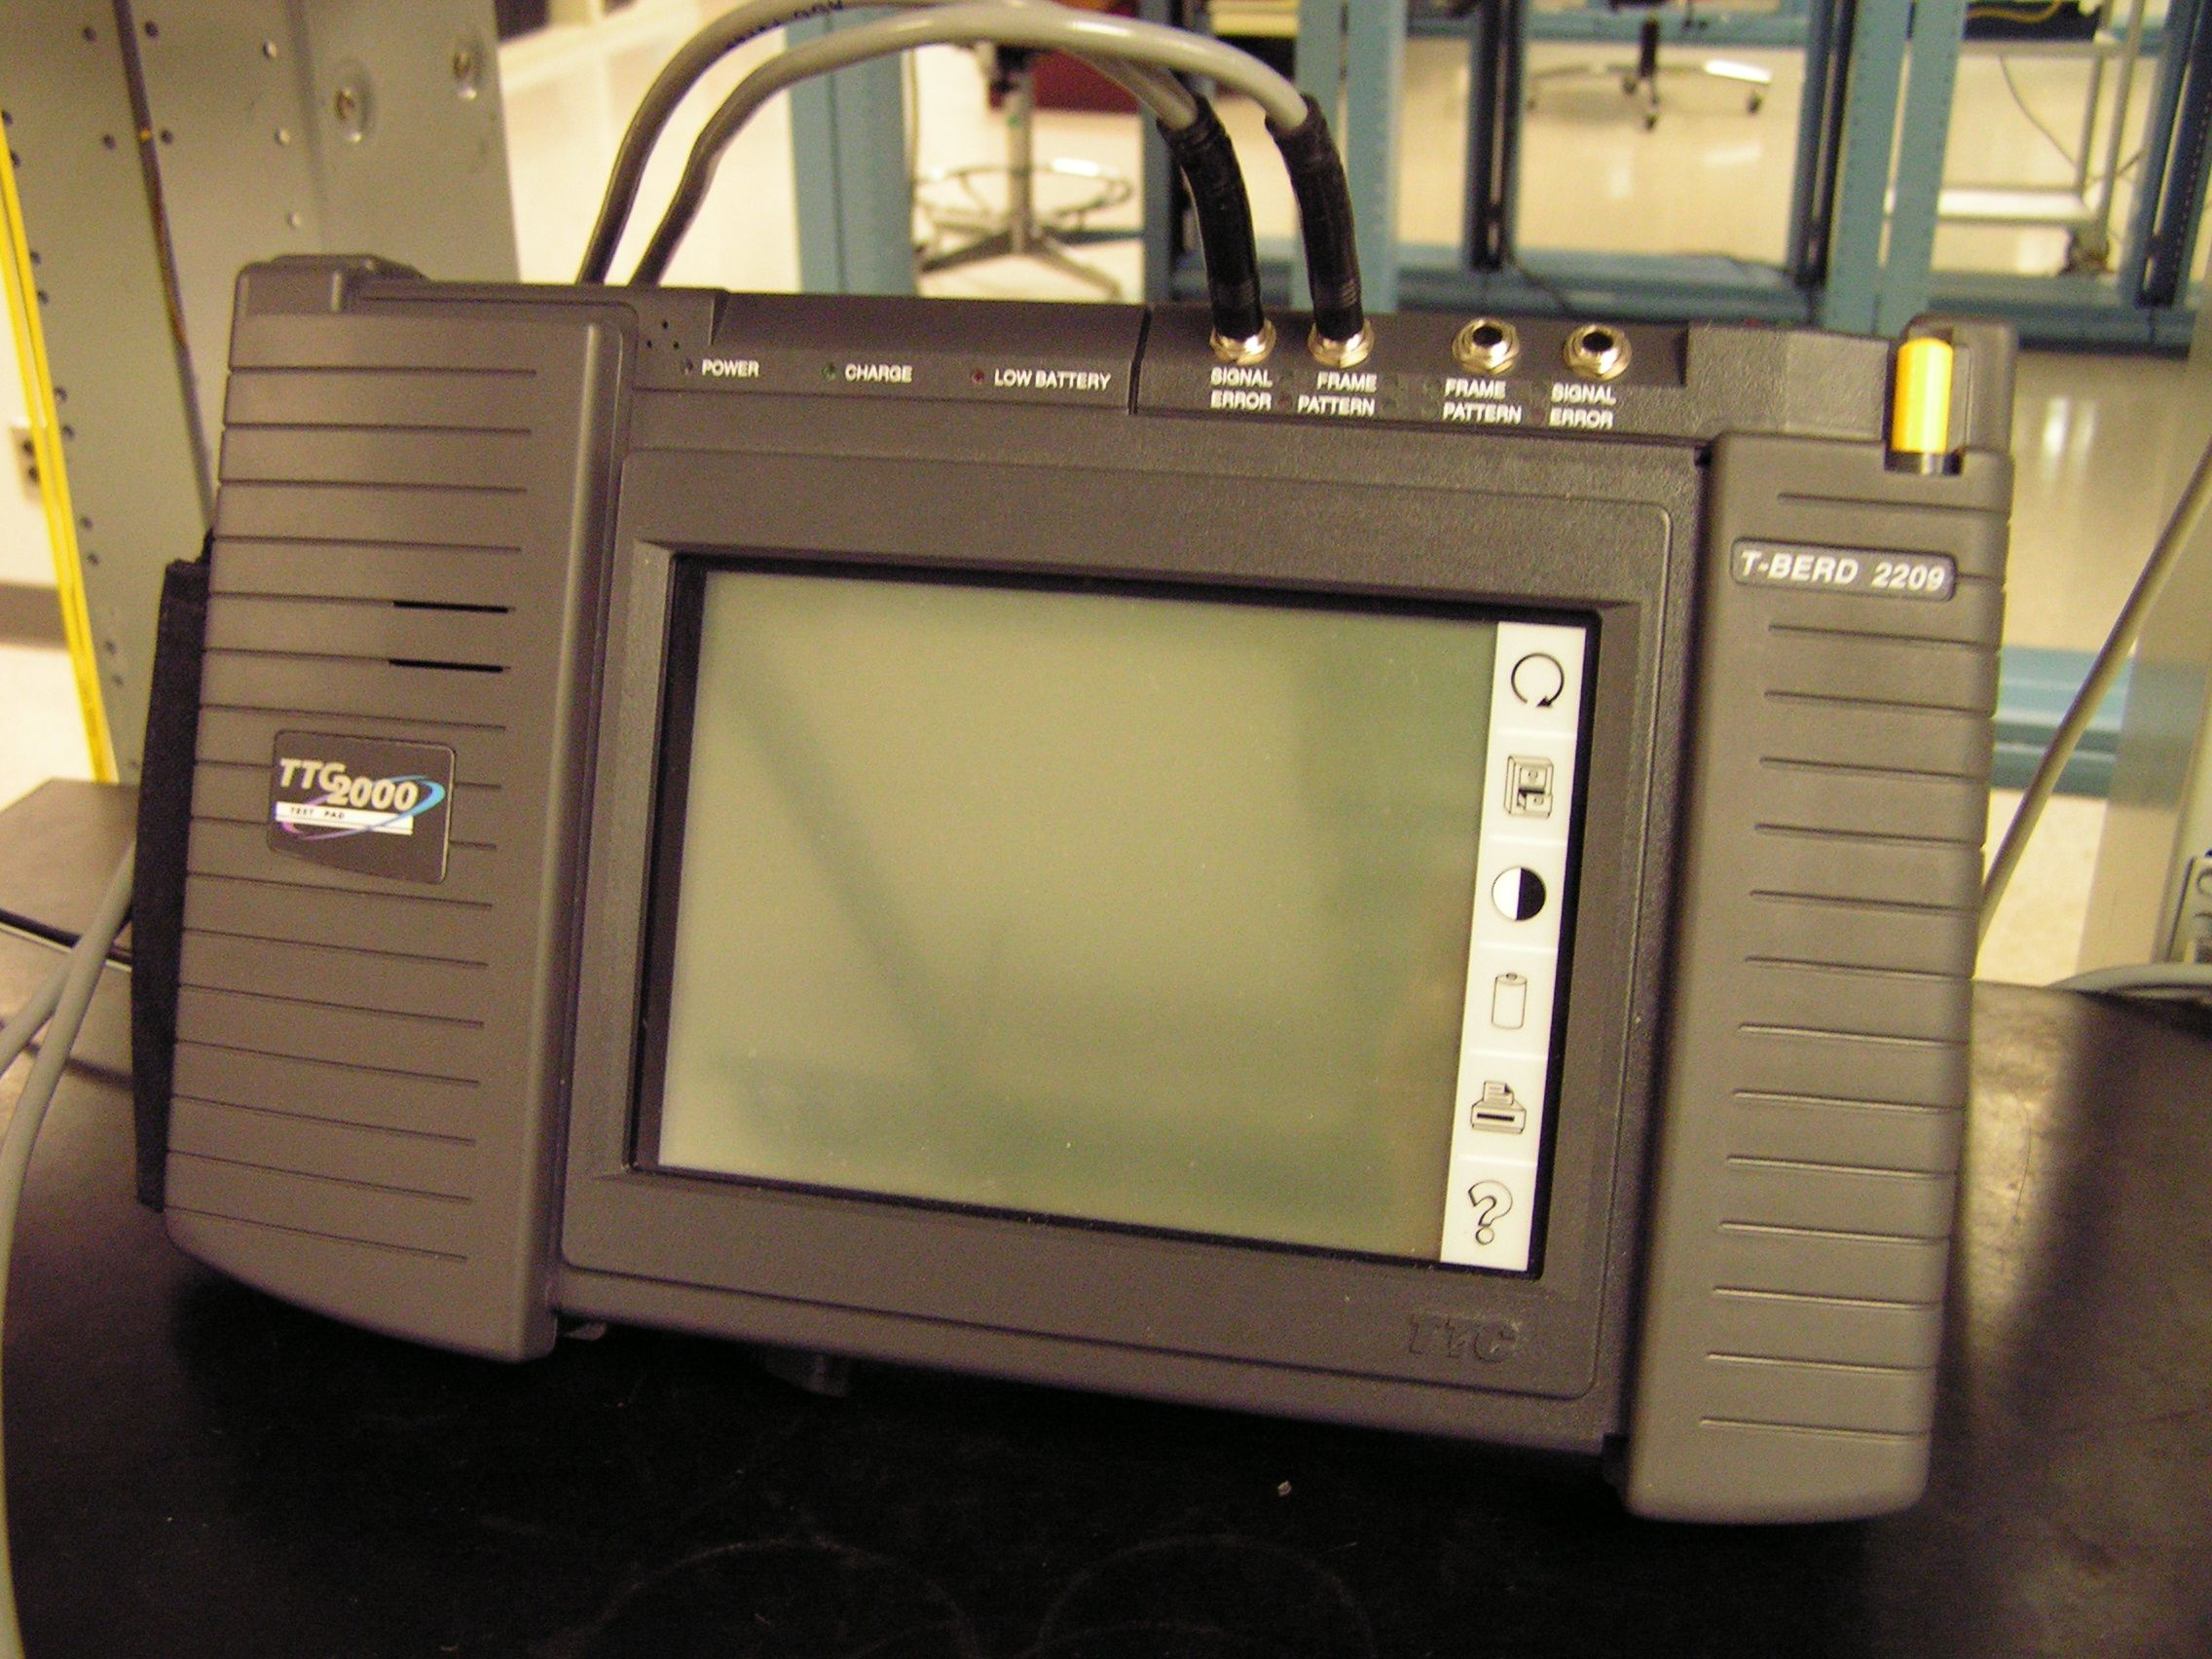 T-Berd 2209 Test Set used to test DS1 & DS3 circuits (circa 2004).